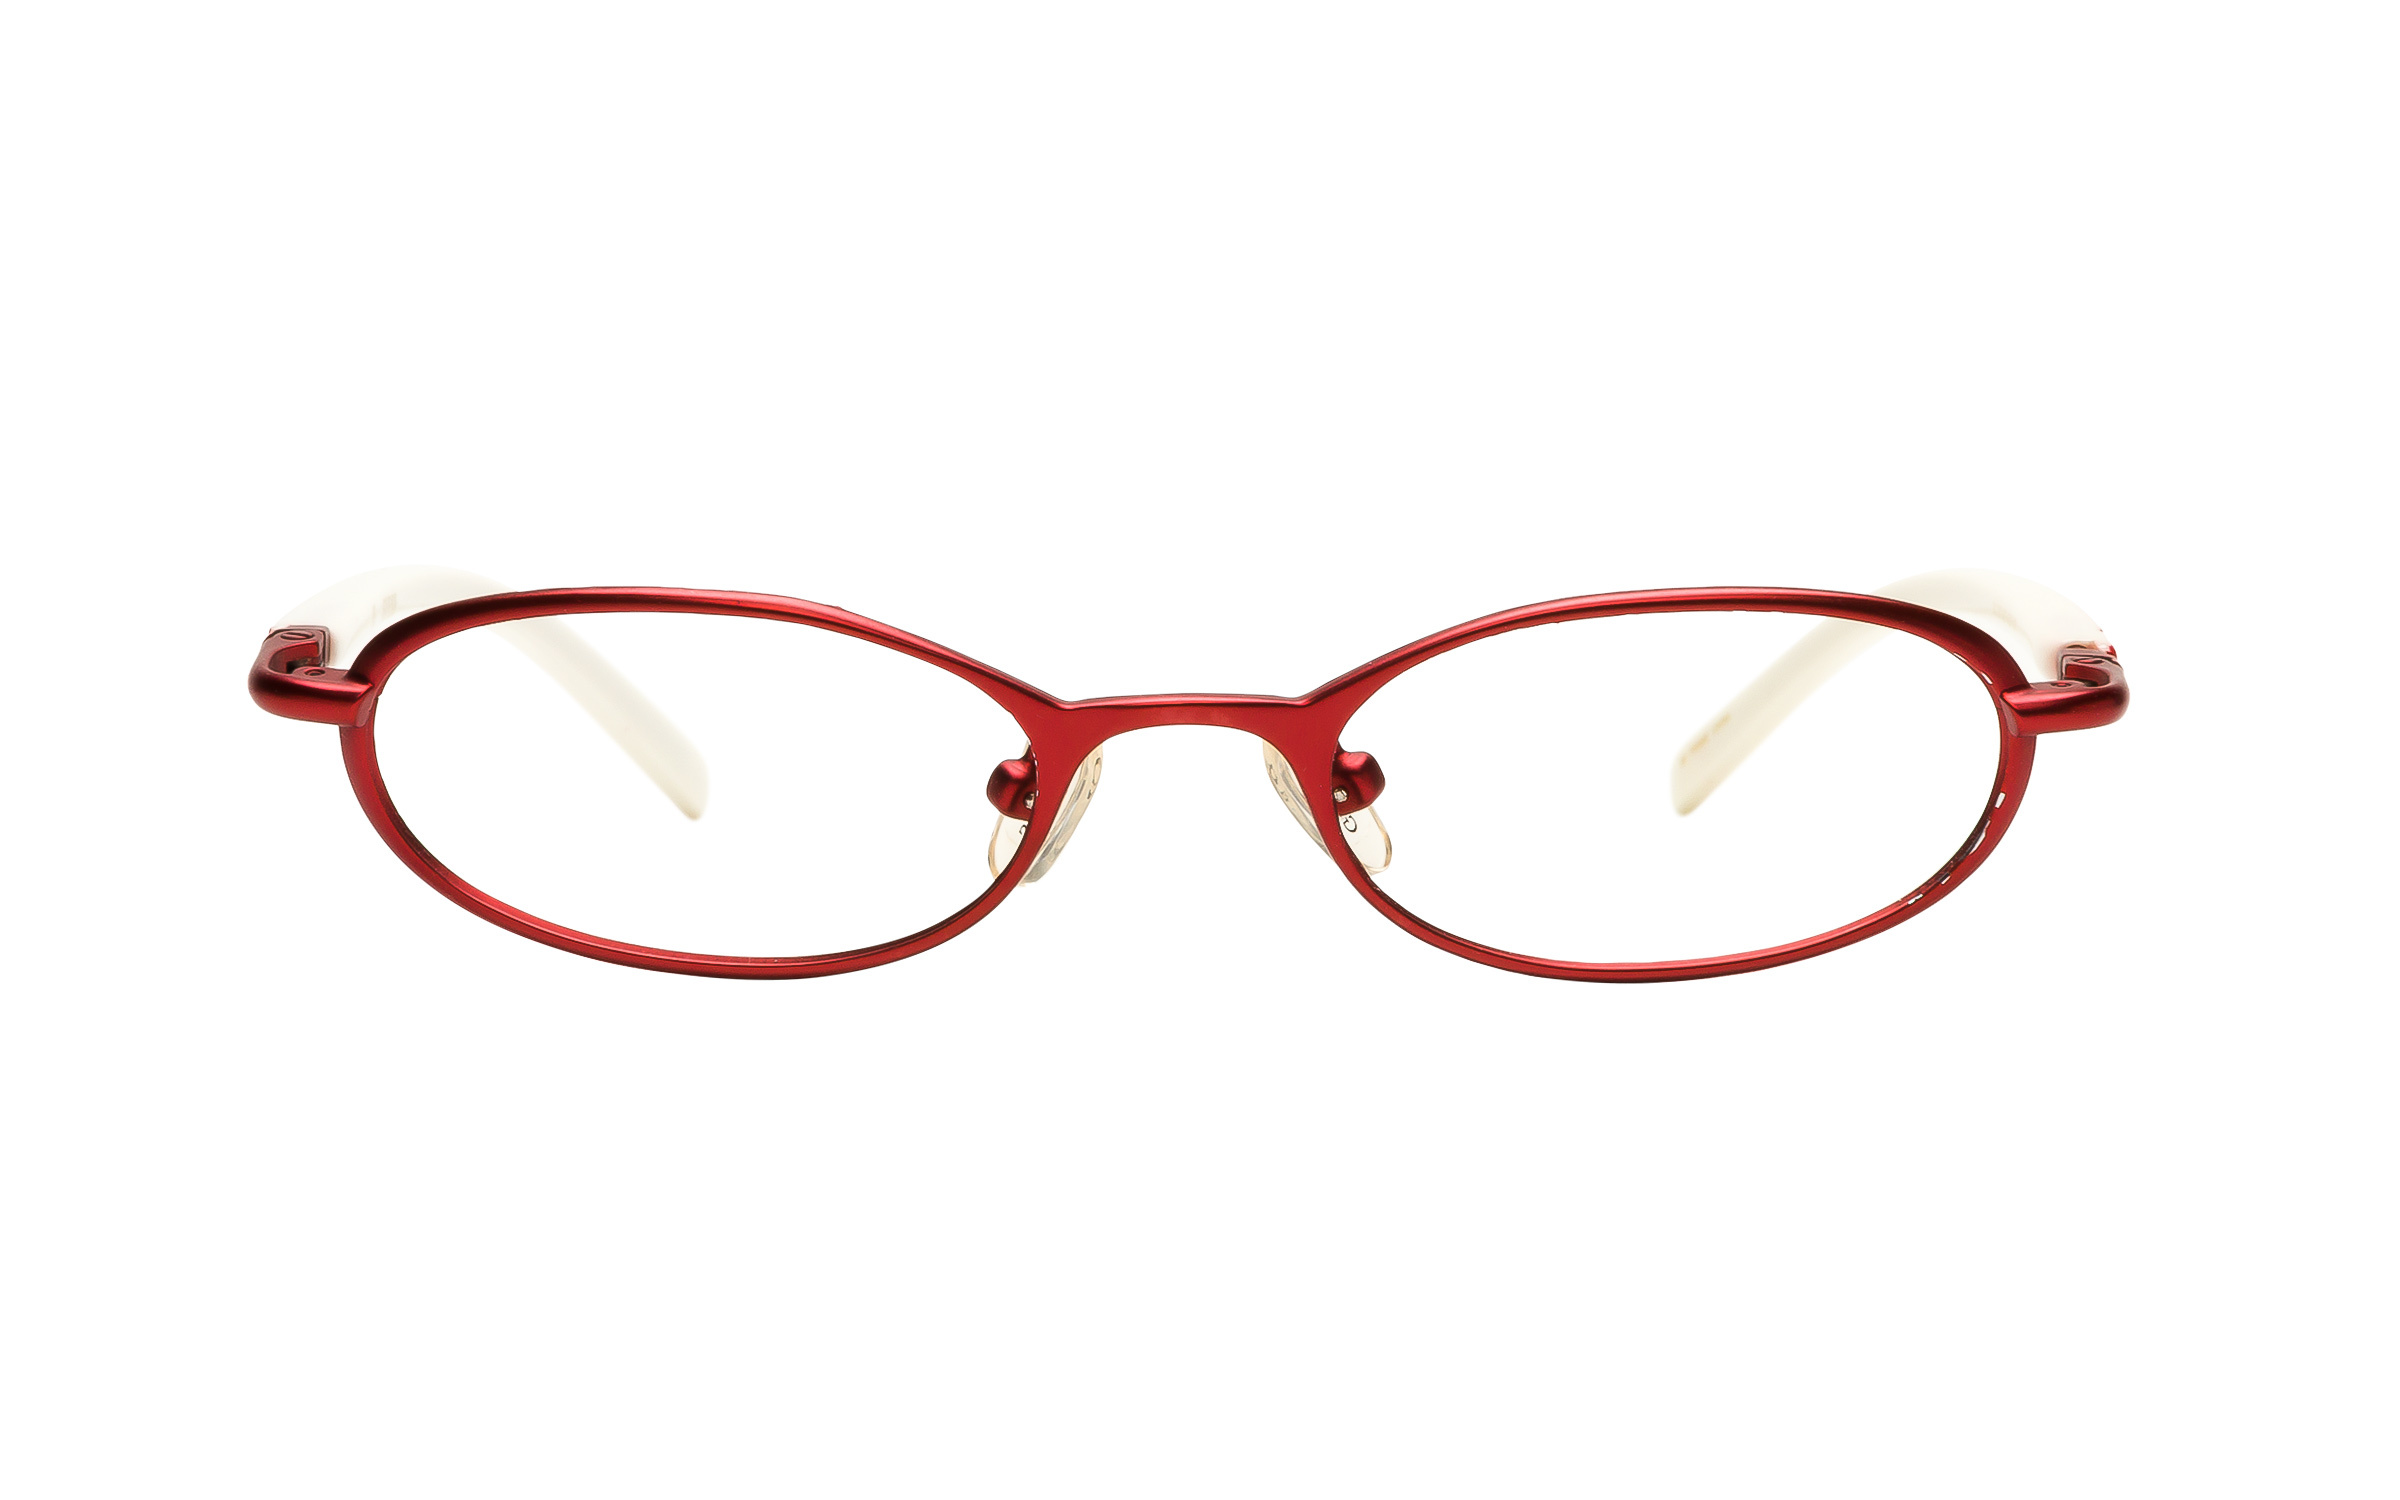 Guess_1291_Eyeglasses_and_Frame_in_Raspberry_Red_|_Metal__Online_Coastal